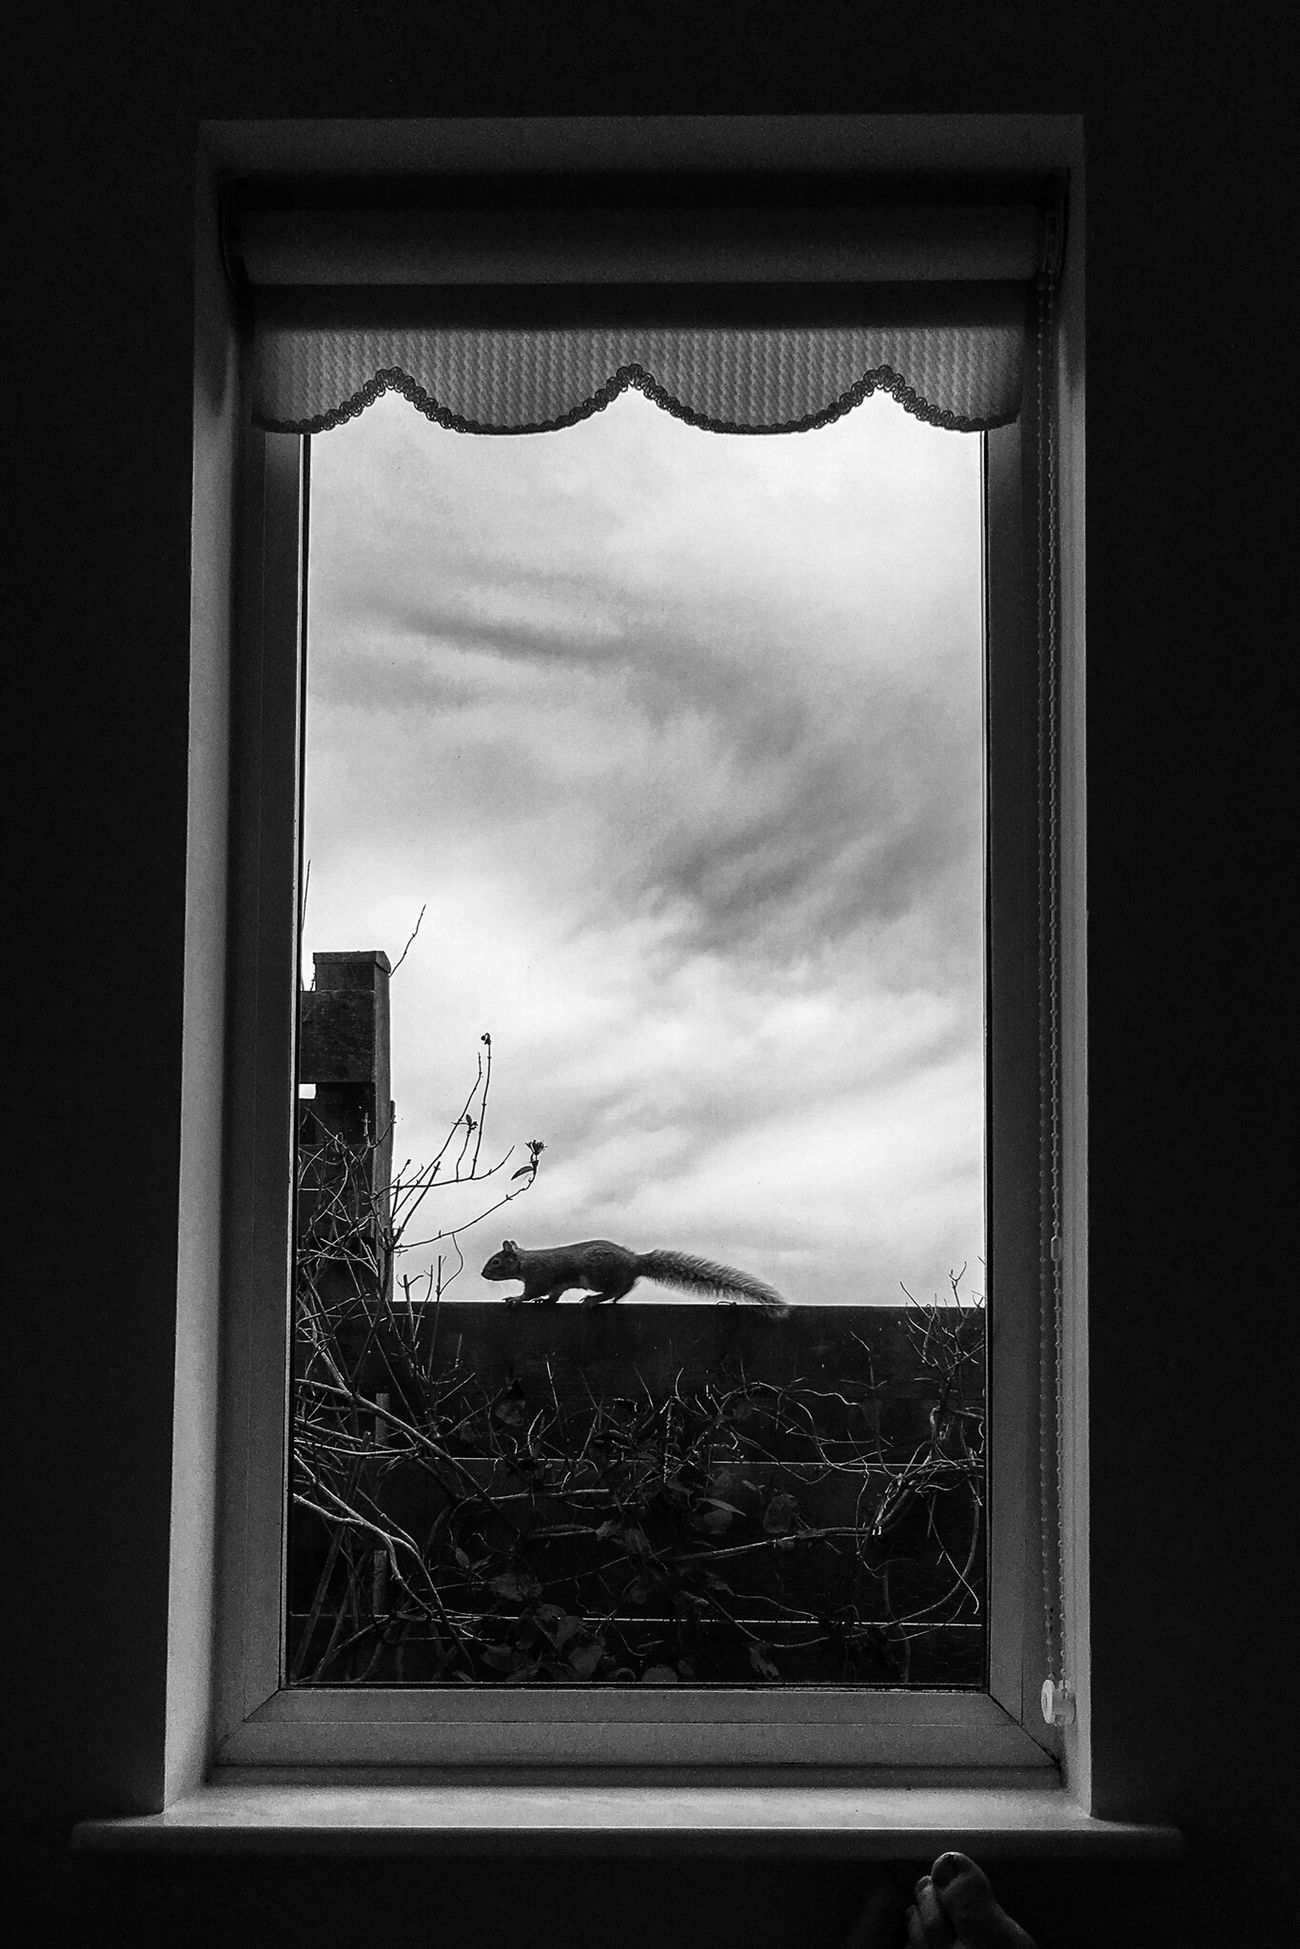 Window Sky No People Cloud - Sky Nature IPhoneography AMPt - My Perspective AMPt_community AMPt - Shoot Or Die TheMinimals (less Edit Juxt Photography) Iphoneonly Eye4photography  Blackandwhite Window Frame Eye4black&white  Taking Photos Black & White Shootermag